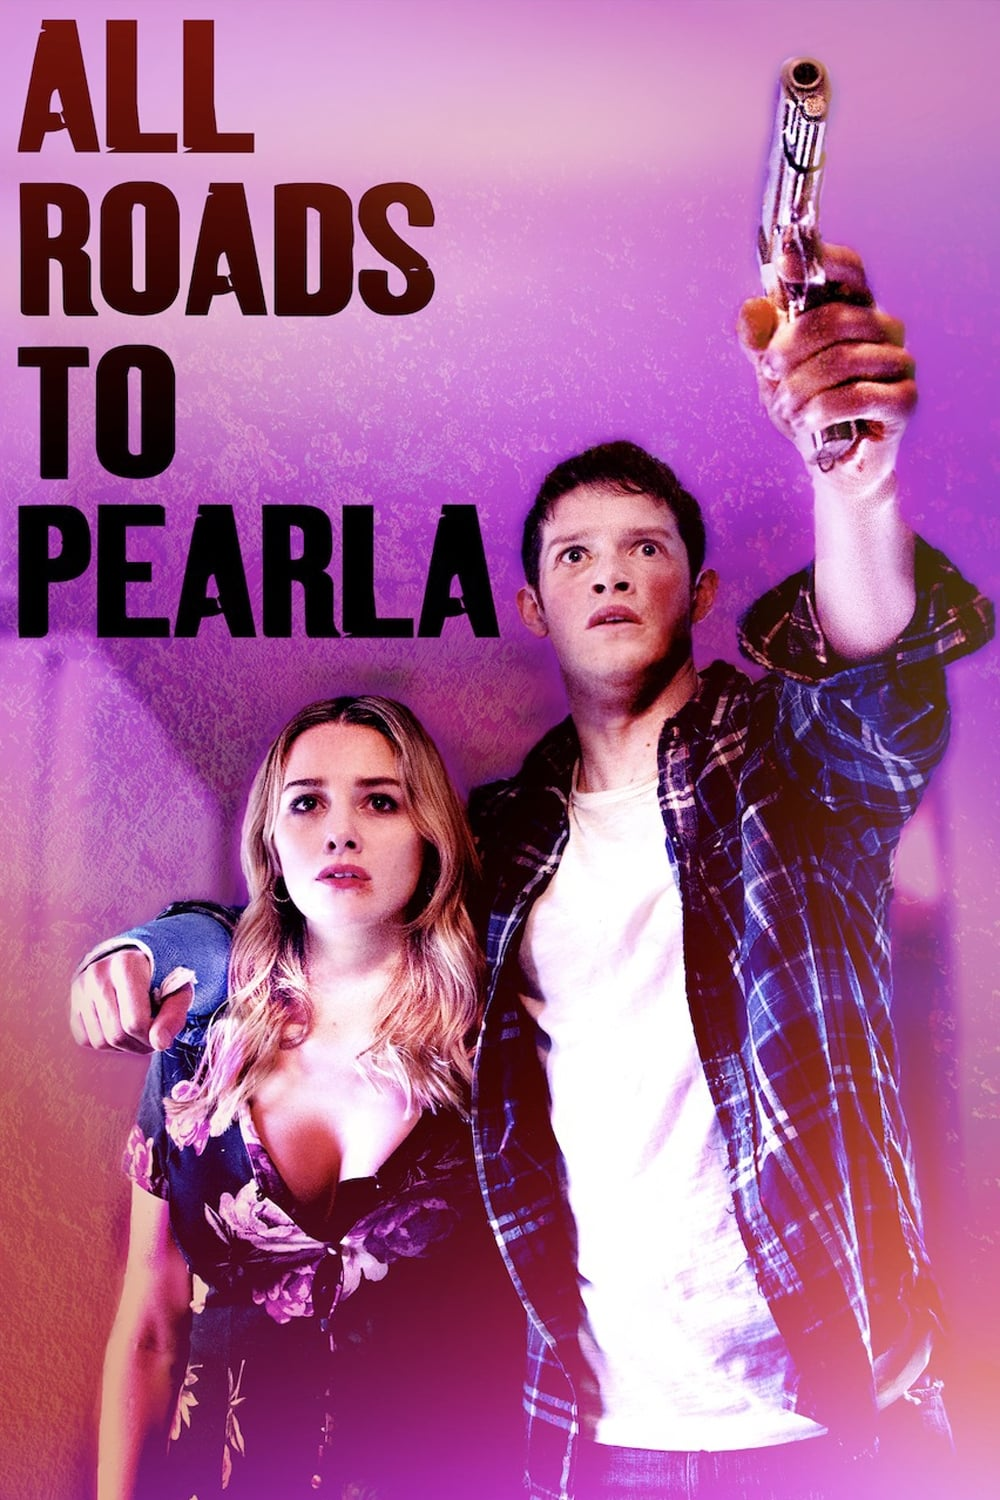 All Roads to Pearla on FREECABLE TV